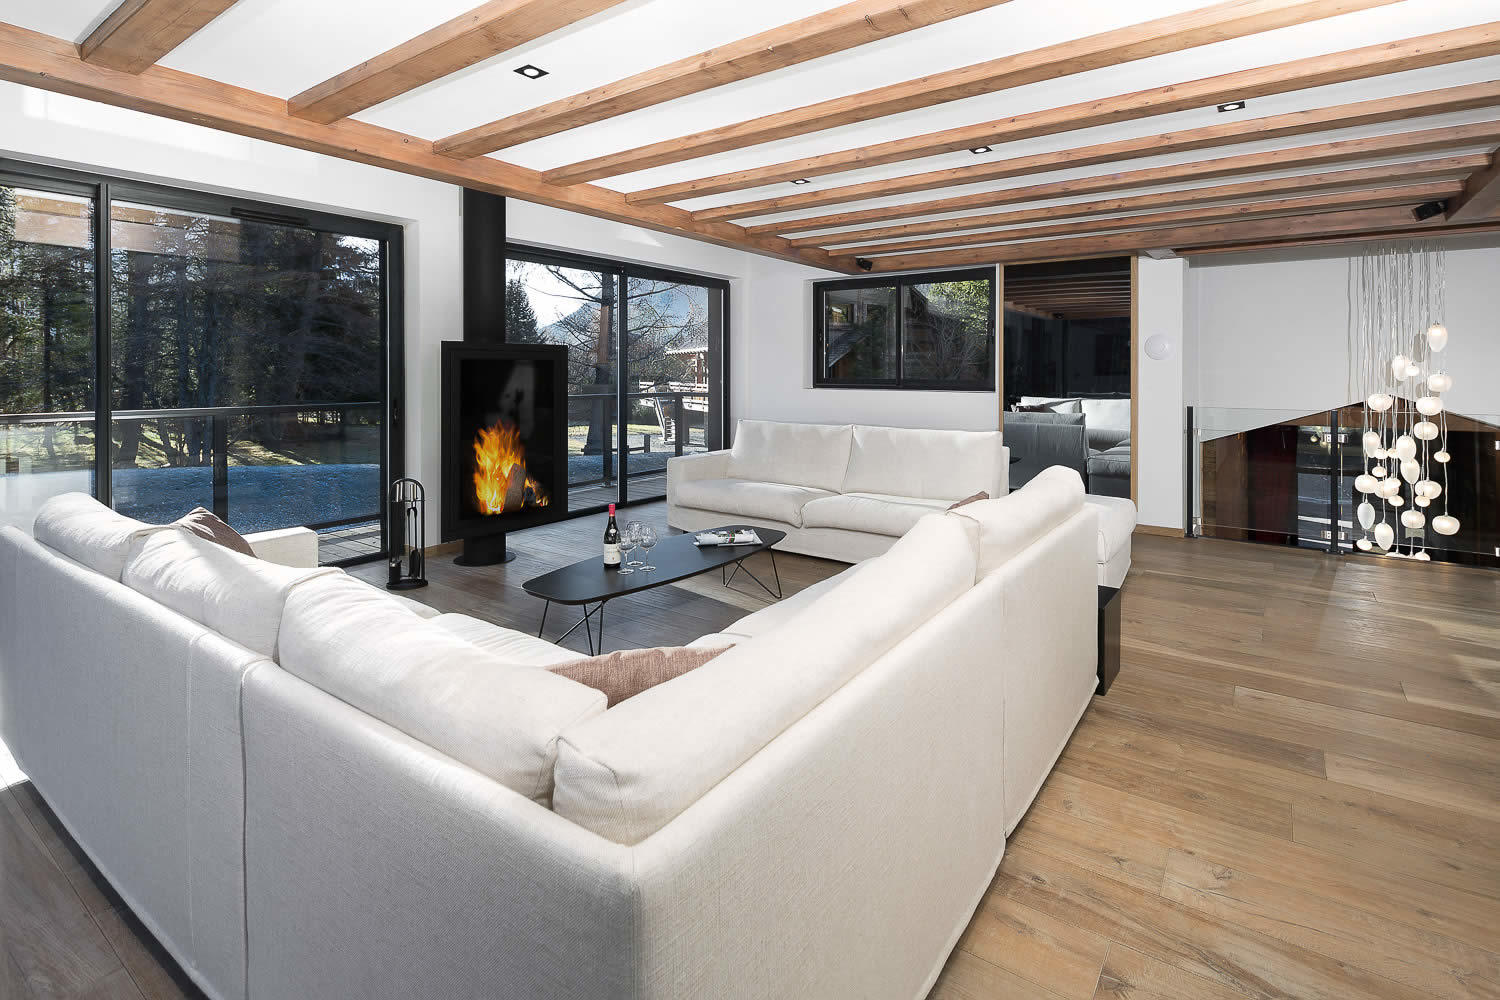 Chalet neuf d 39 exception au design contemporain vendre chamonix grandes baies vitr es for Chalet design contemporain